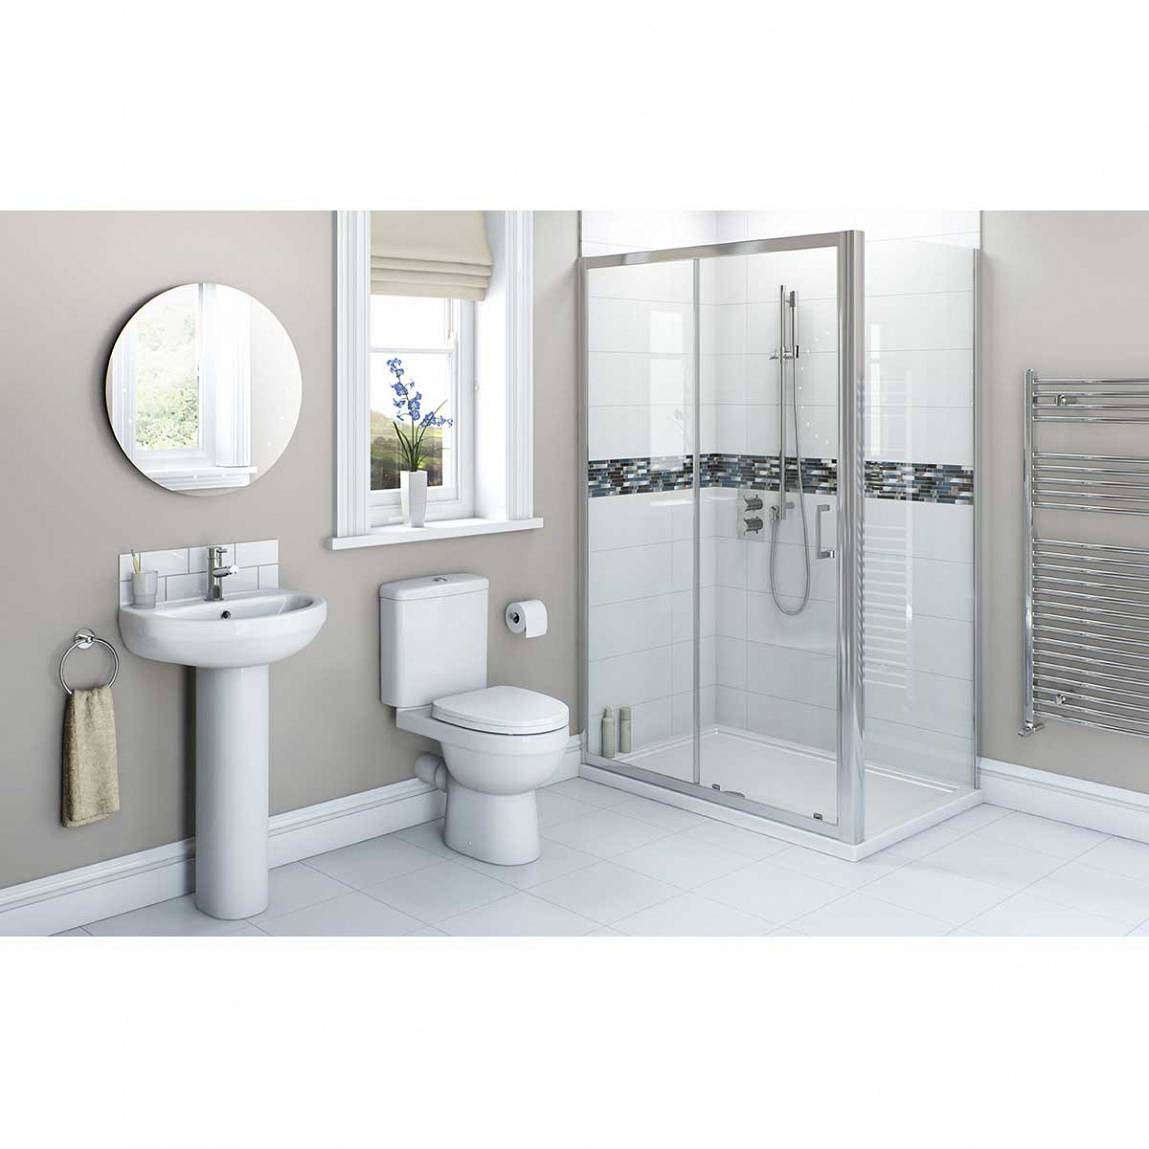 Image of Energy Bathroom set with 1200x700 Sliding Enclosure